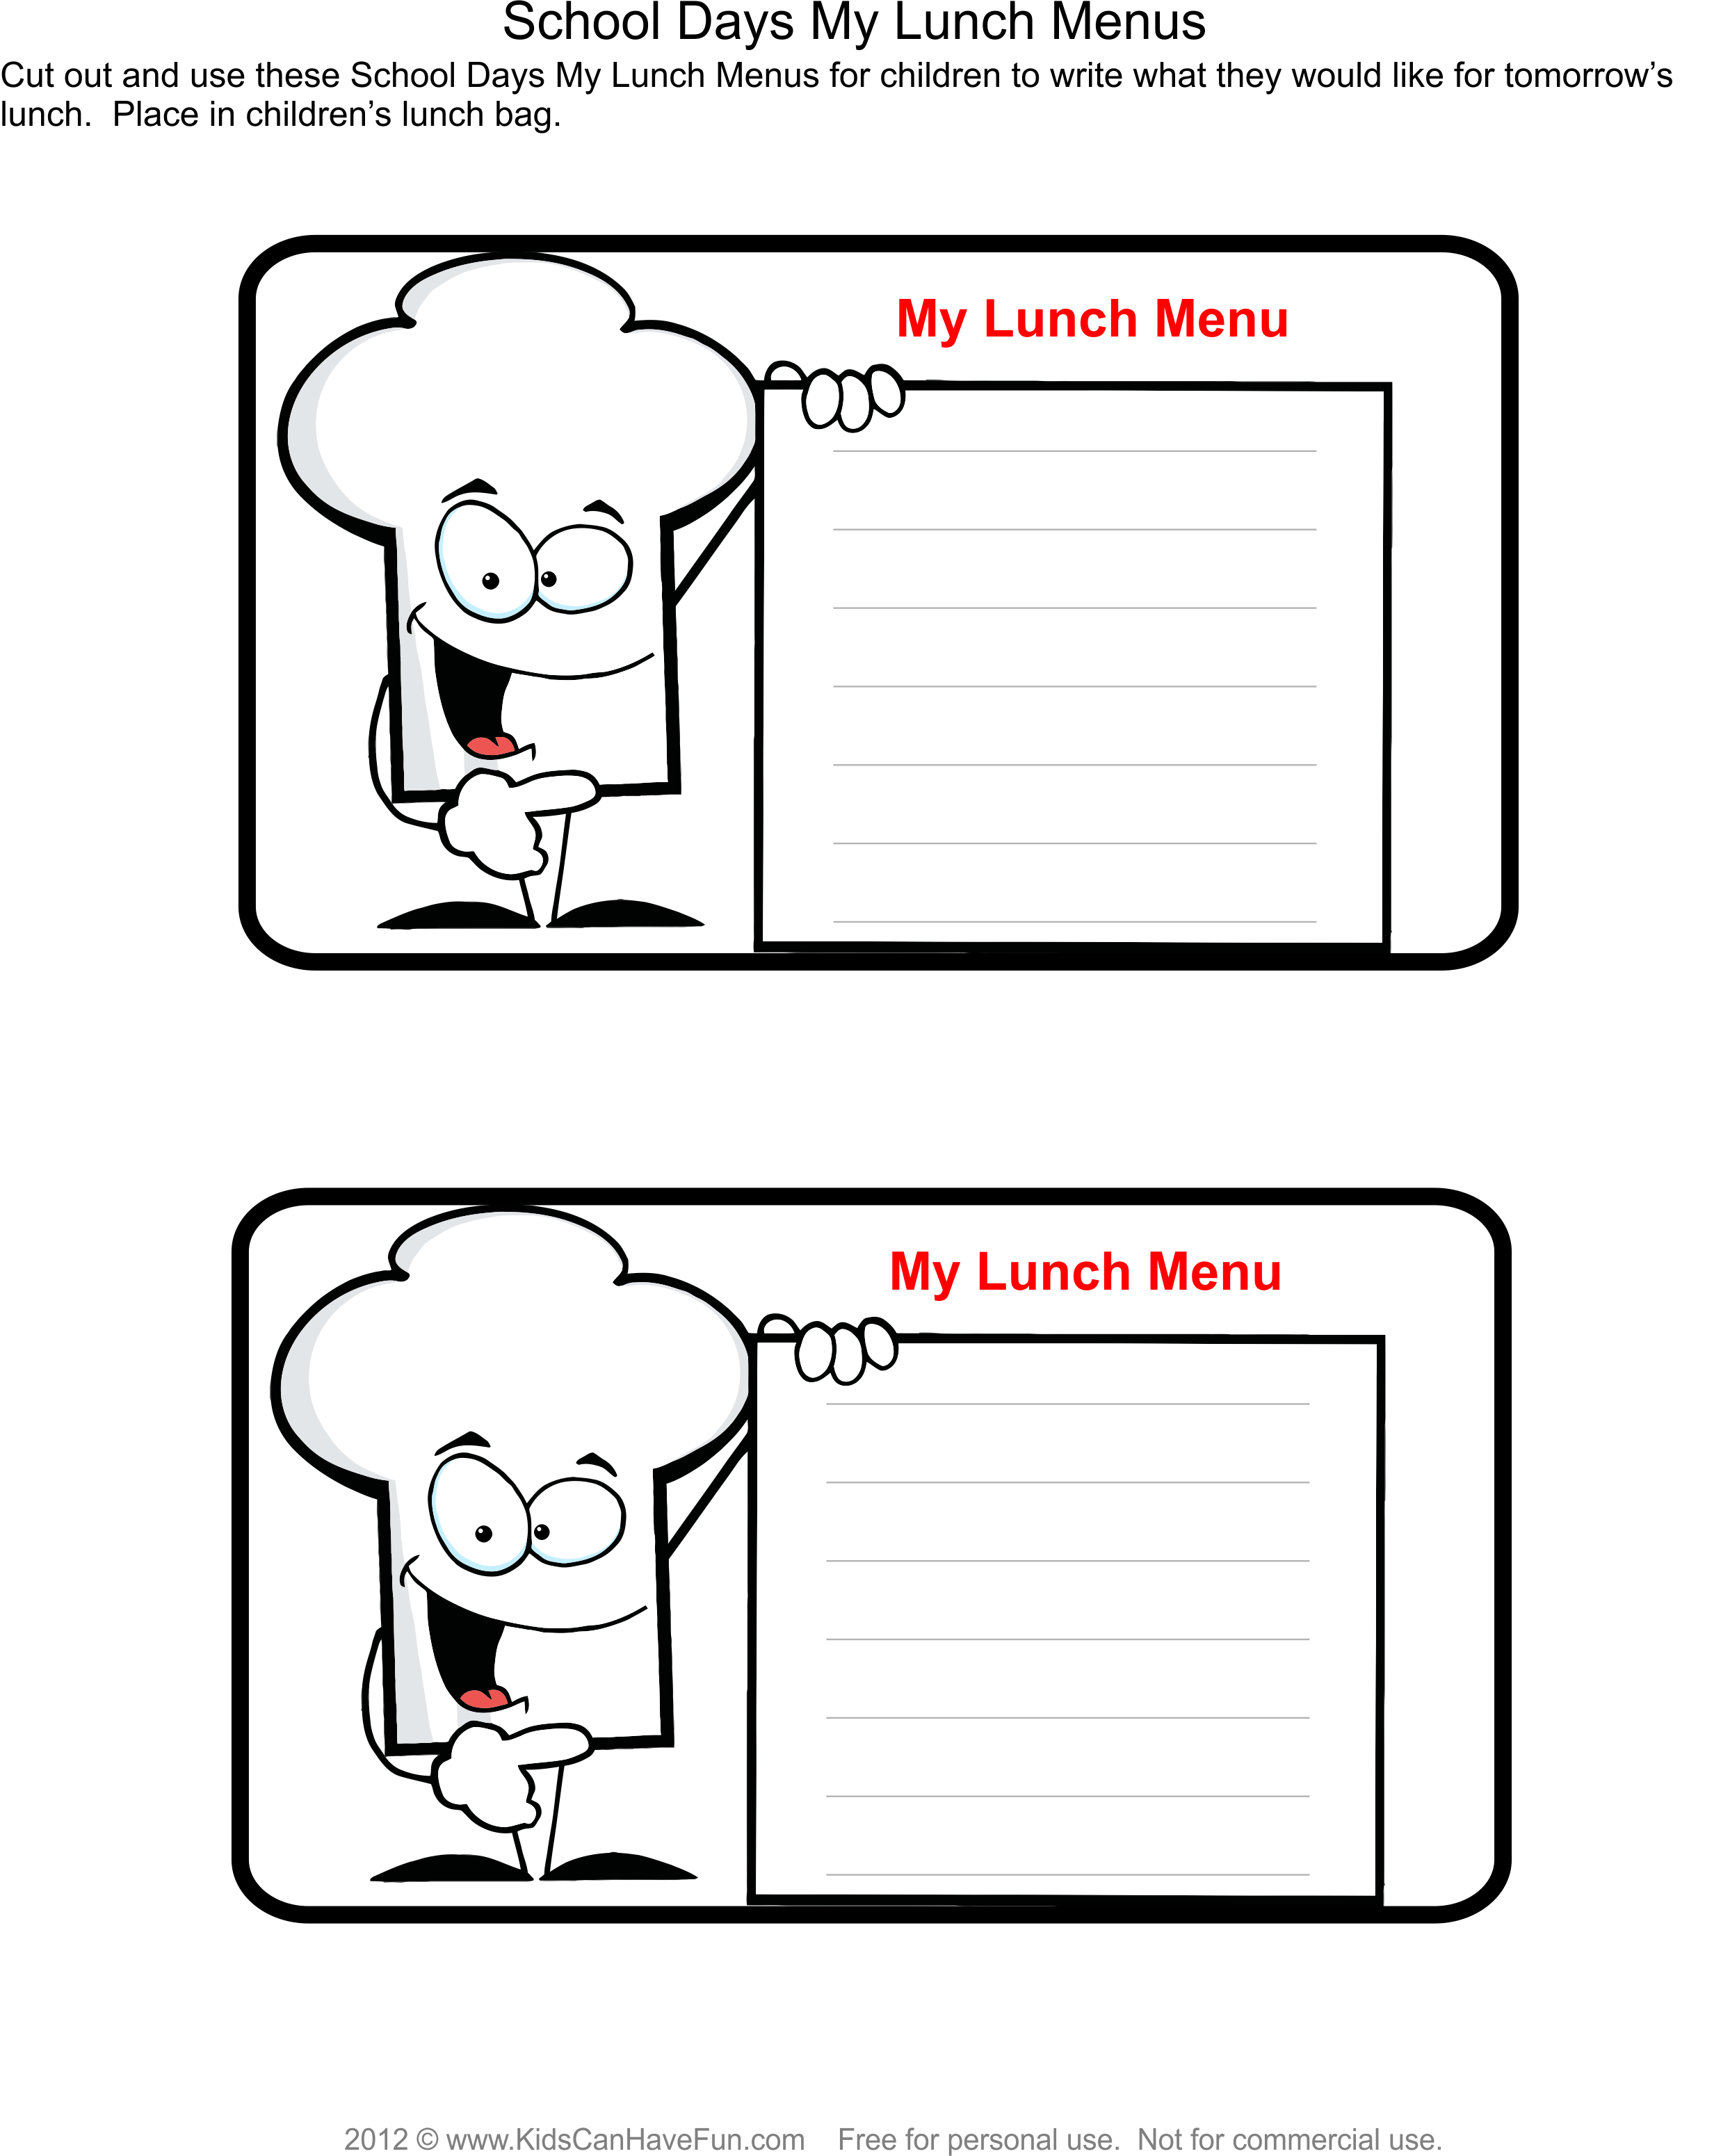 place my lunch menu in lunch bag kids write down what they would fun worksheets for kids writing practice tracing pages math worksheets no bullying posters flash cards cut and paste worksheets and more fun